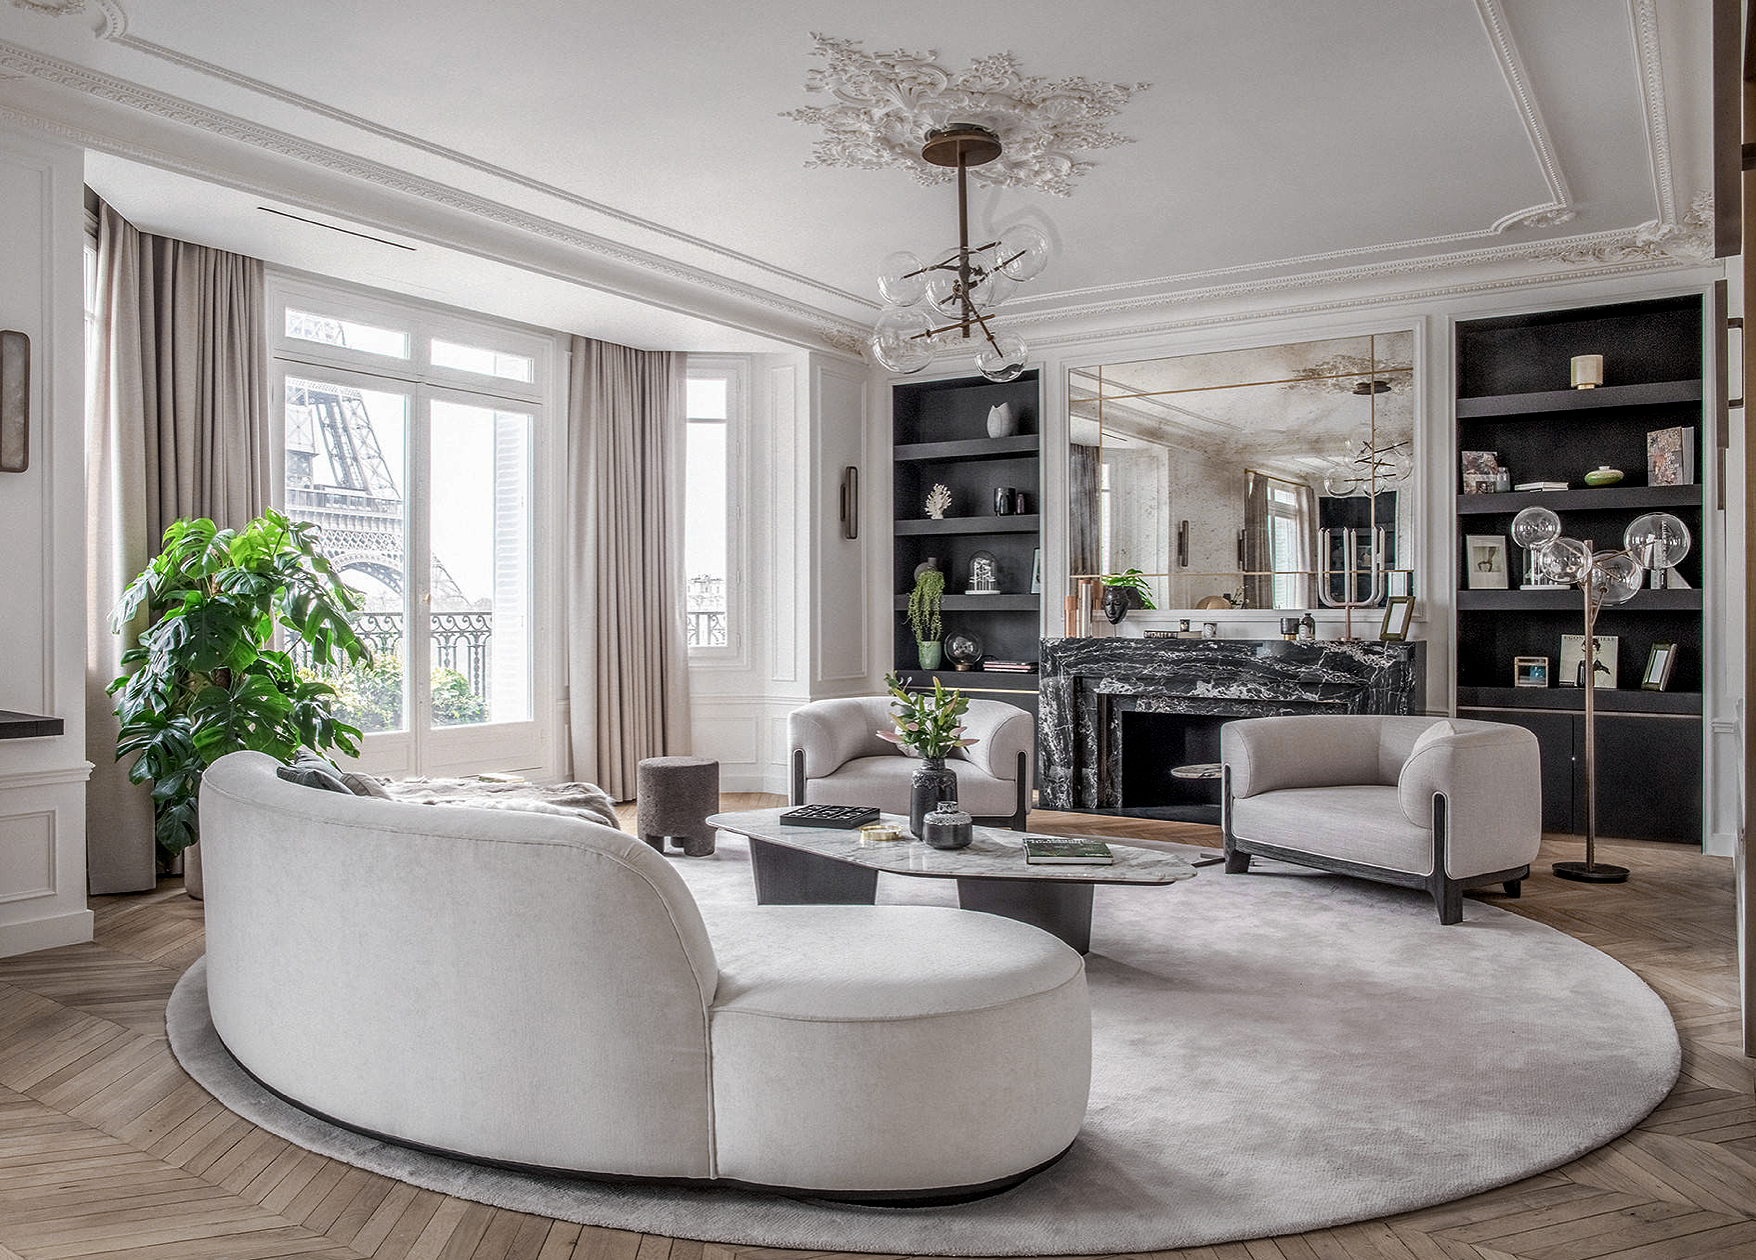 Gorgeous Living Room Decor With Curved Sofa Elegant Glam Living